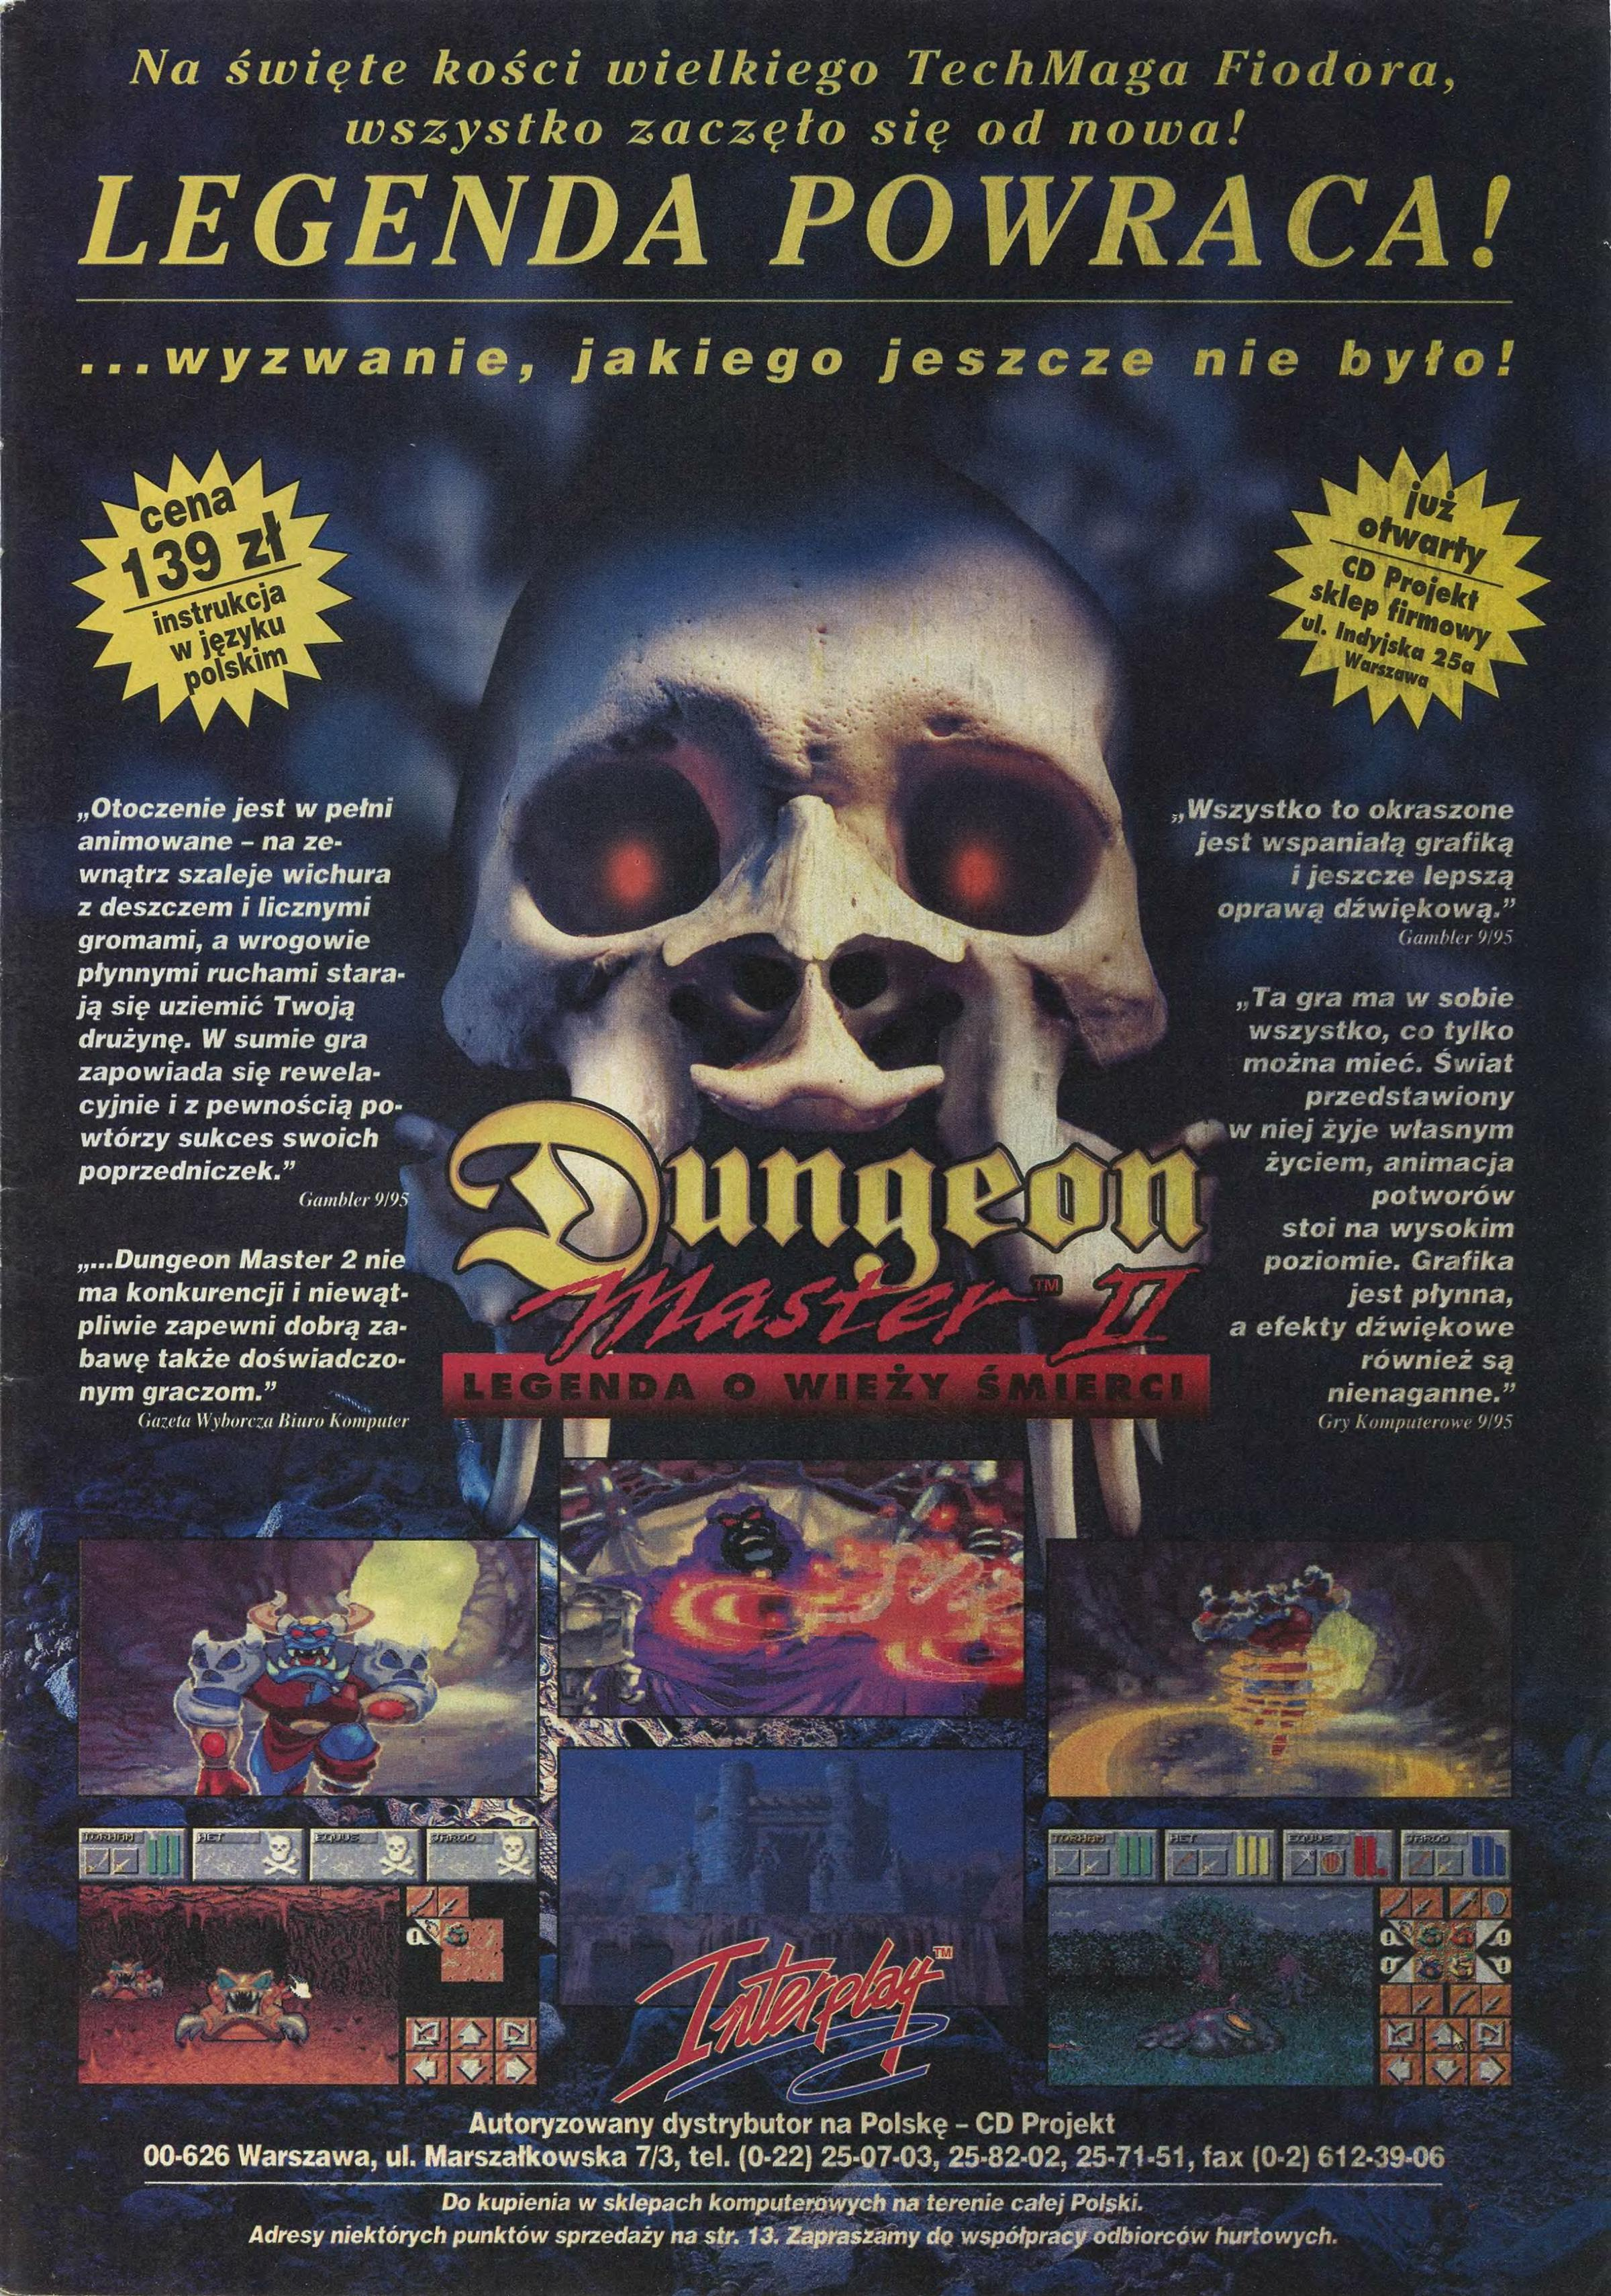 Dungeon Master II for PC-Amiga-Macintosh Advertisement published in Polish magazine 'Secret Service', Issue #29 November 1995, Page 3